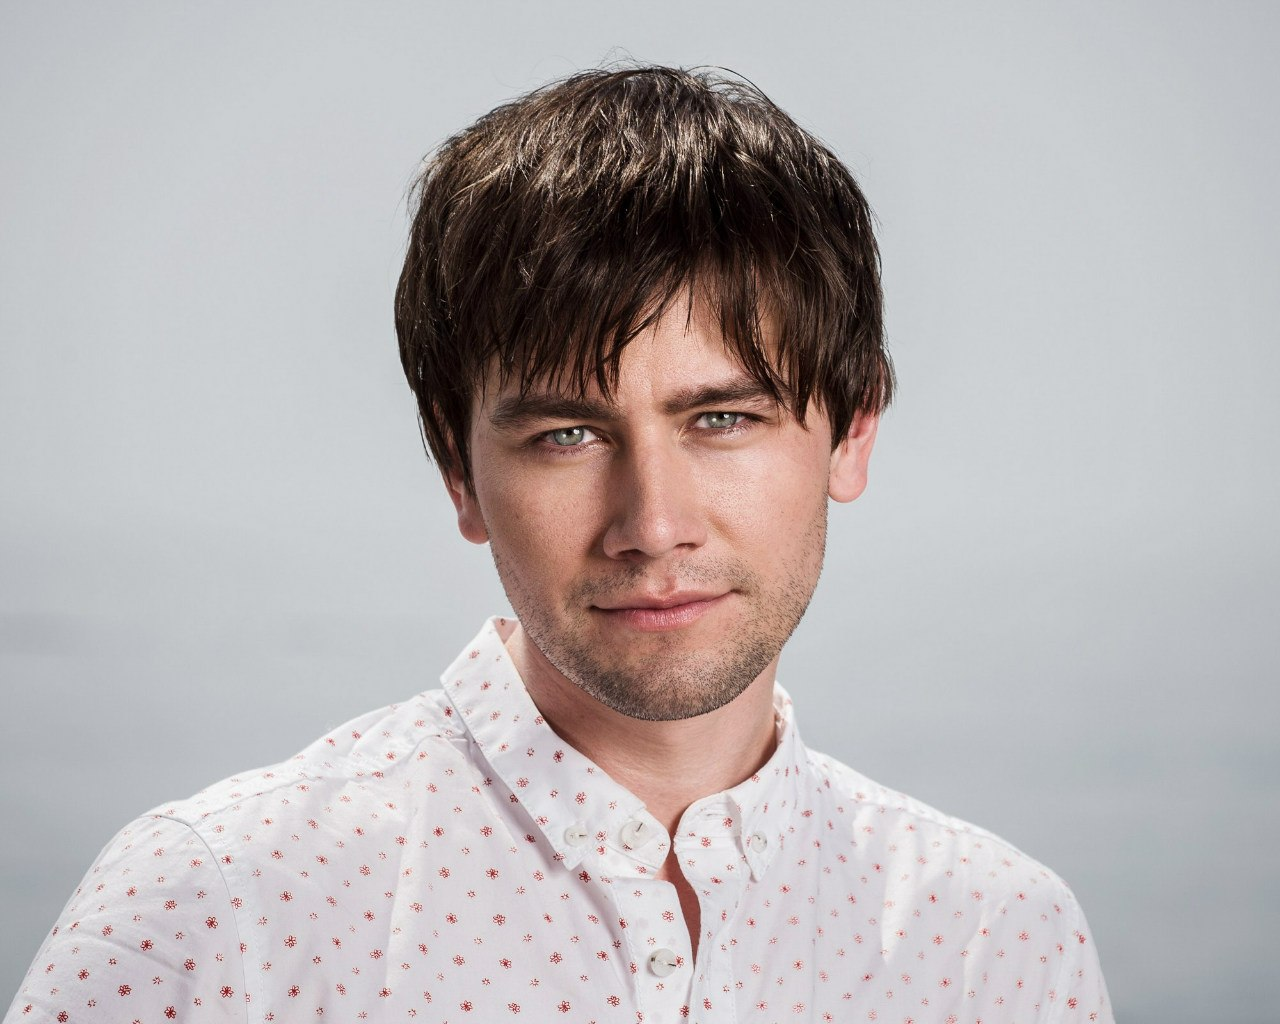 torrance coombs wdw